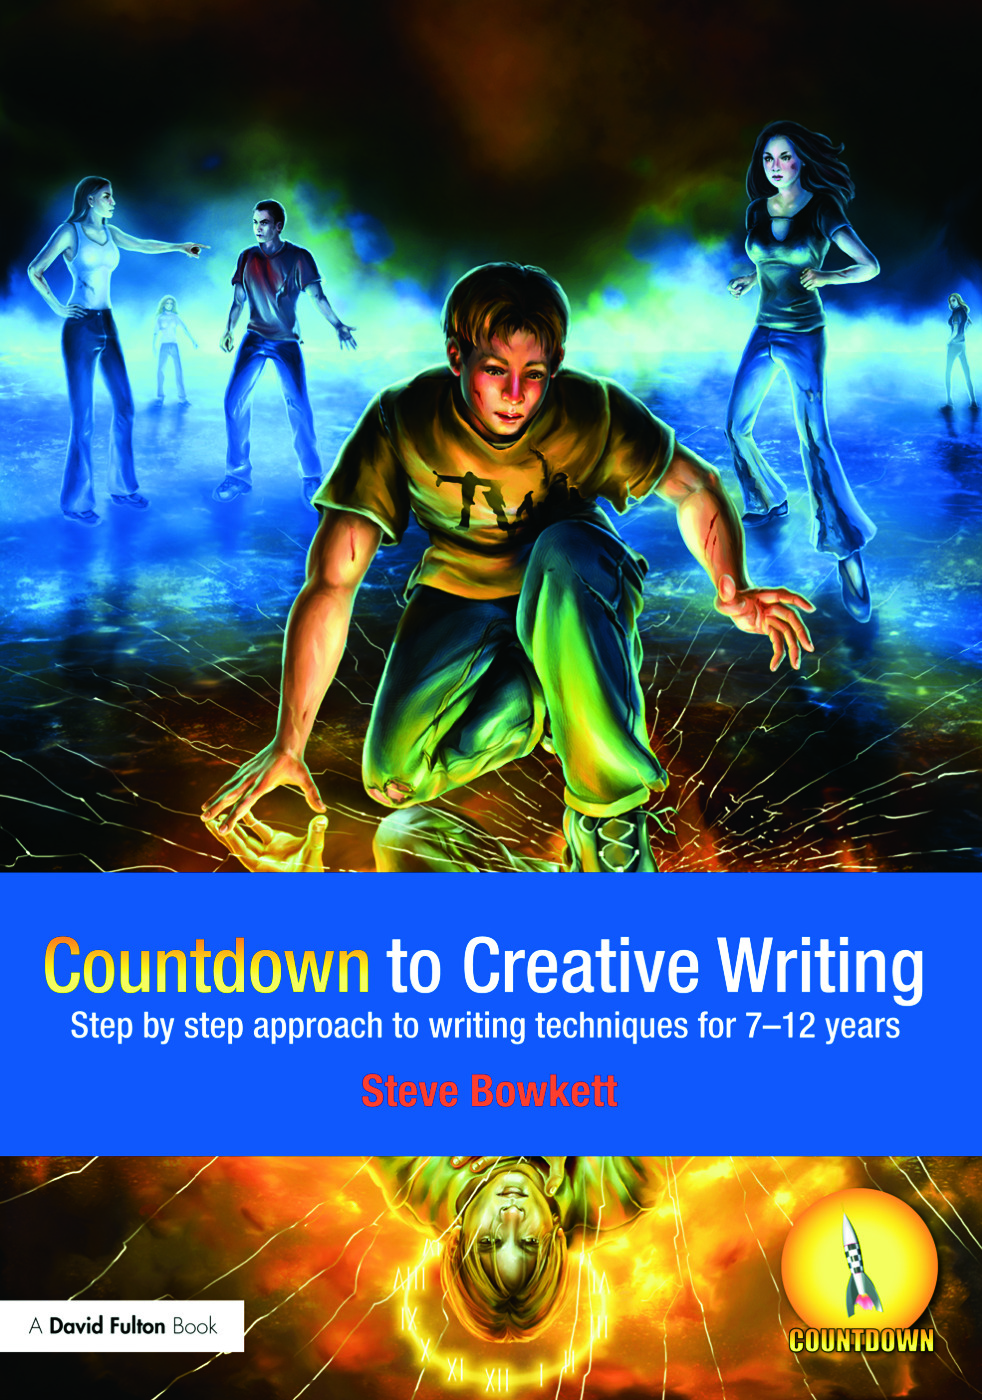 Countdown to Creative Writing: Step by Step Approach to Writing Techniques for 7-12 Years (Paperback) book cover